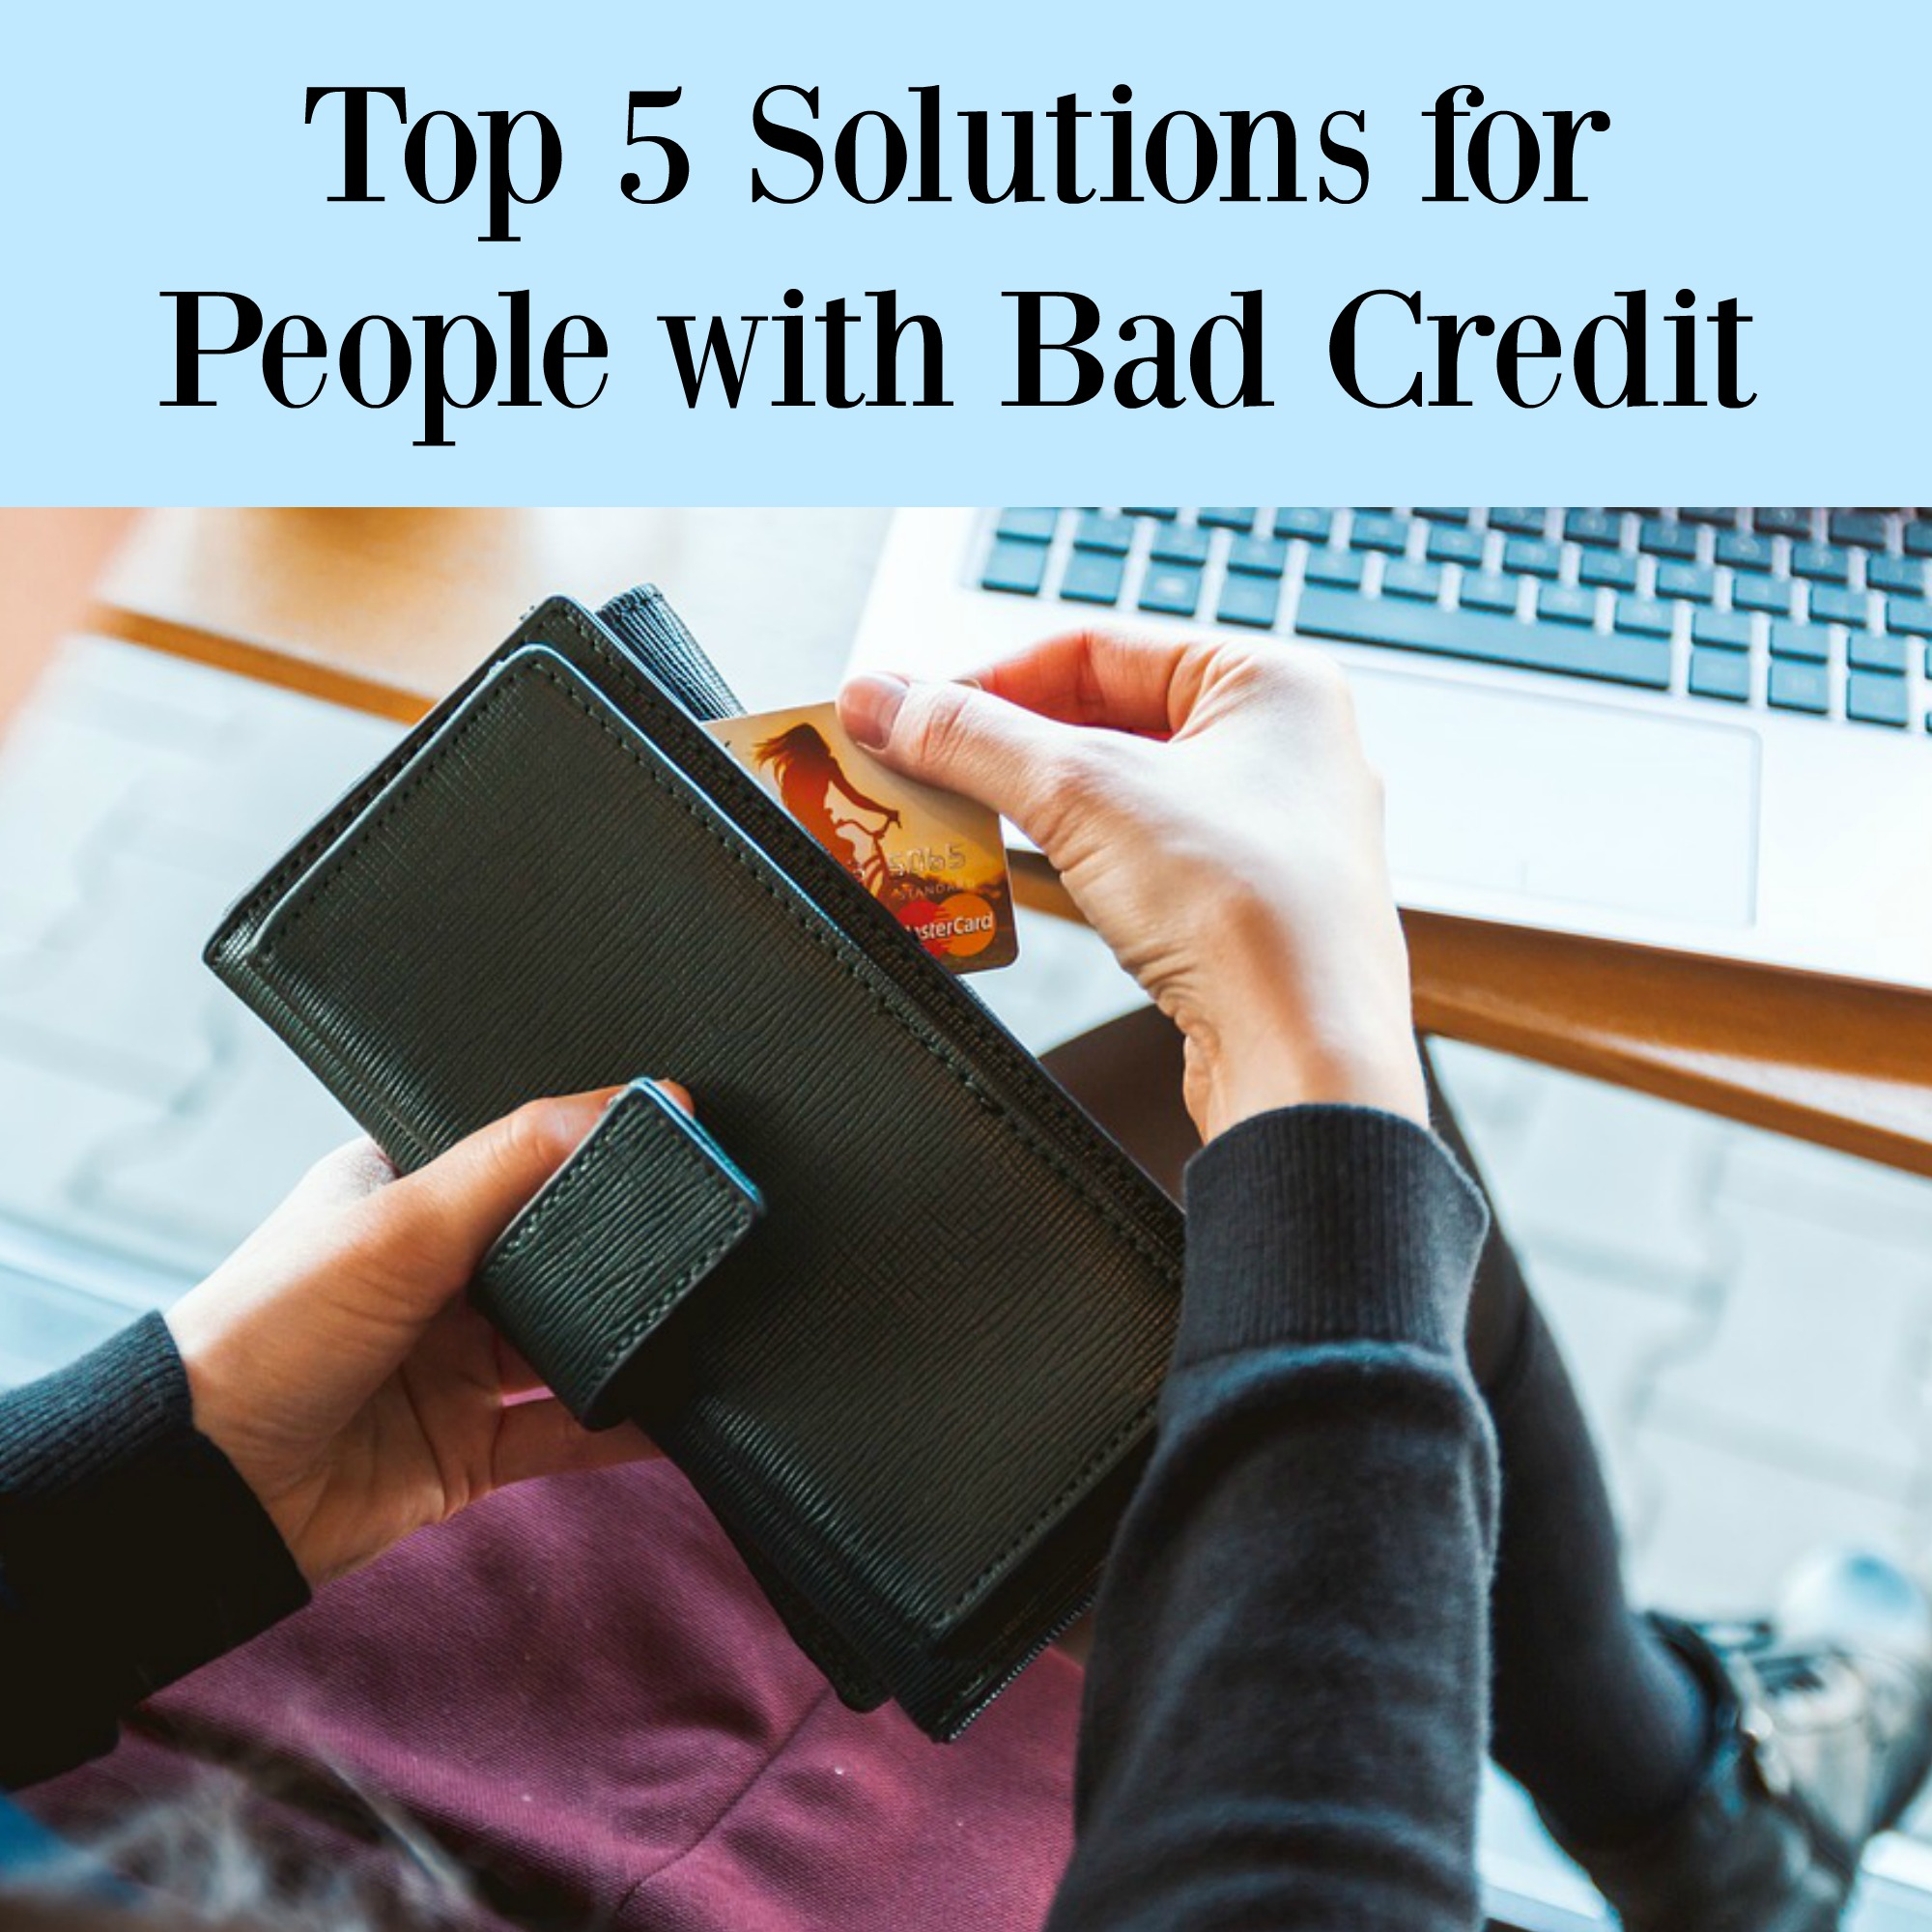 Top 5 Solutions for People with Bad Credit